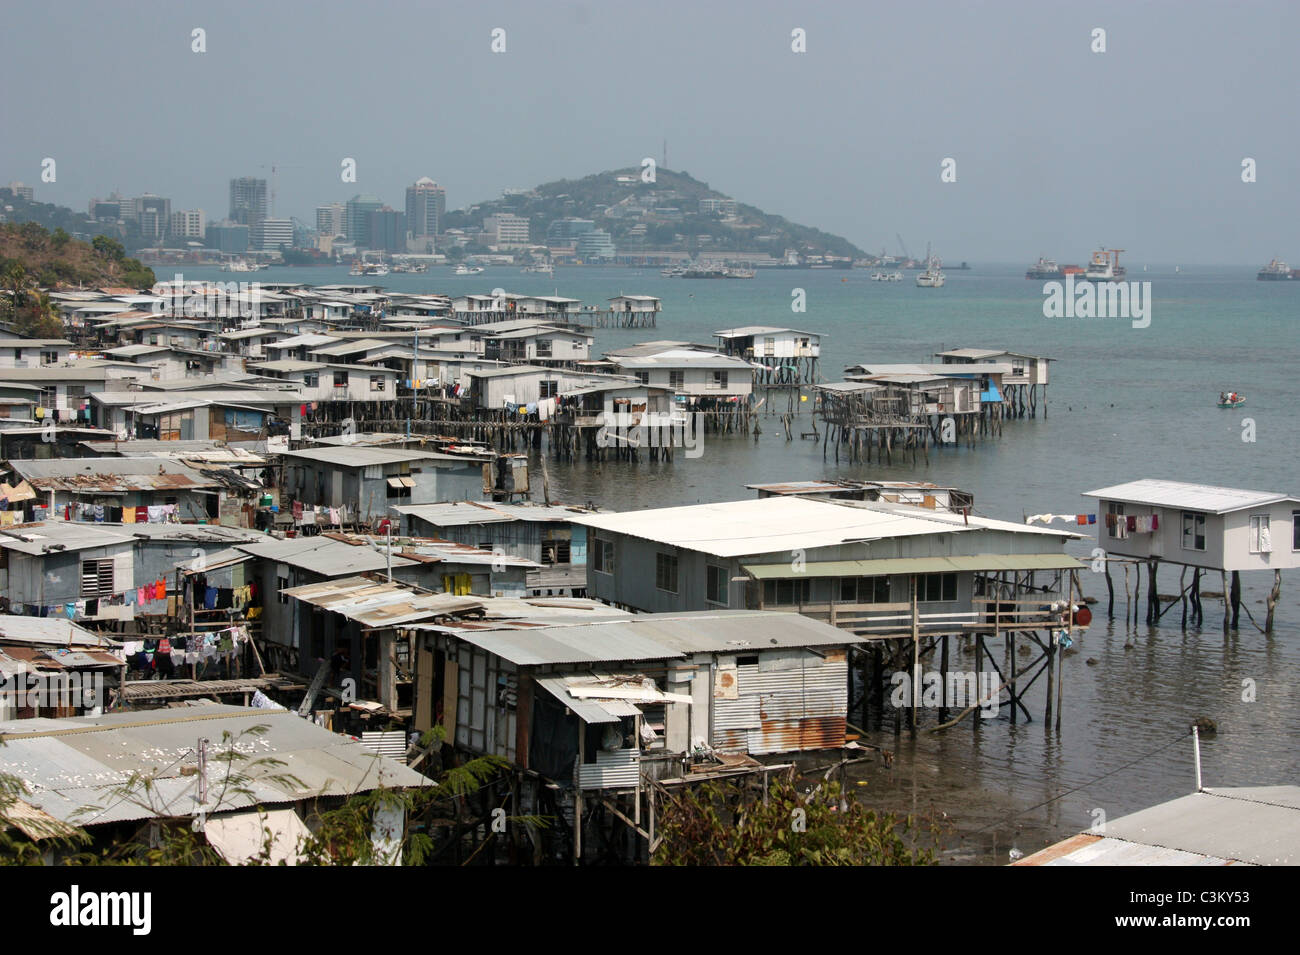 Port Moresby - Stock Image